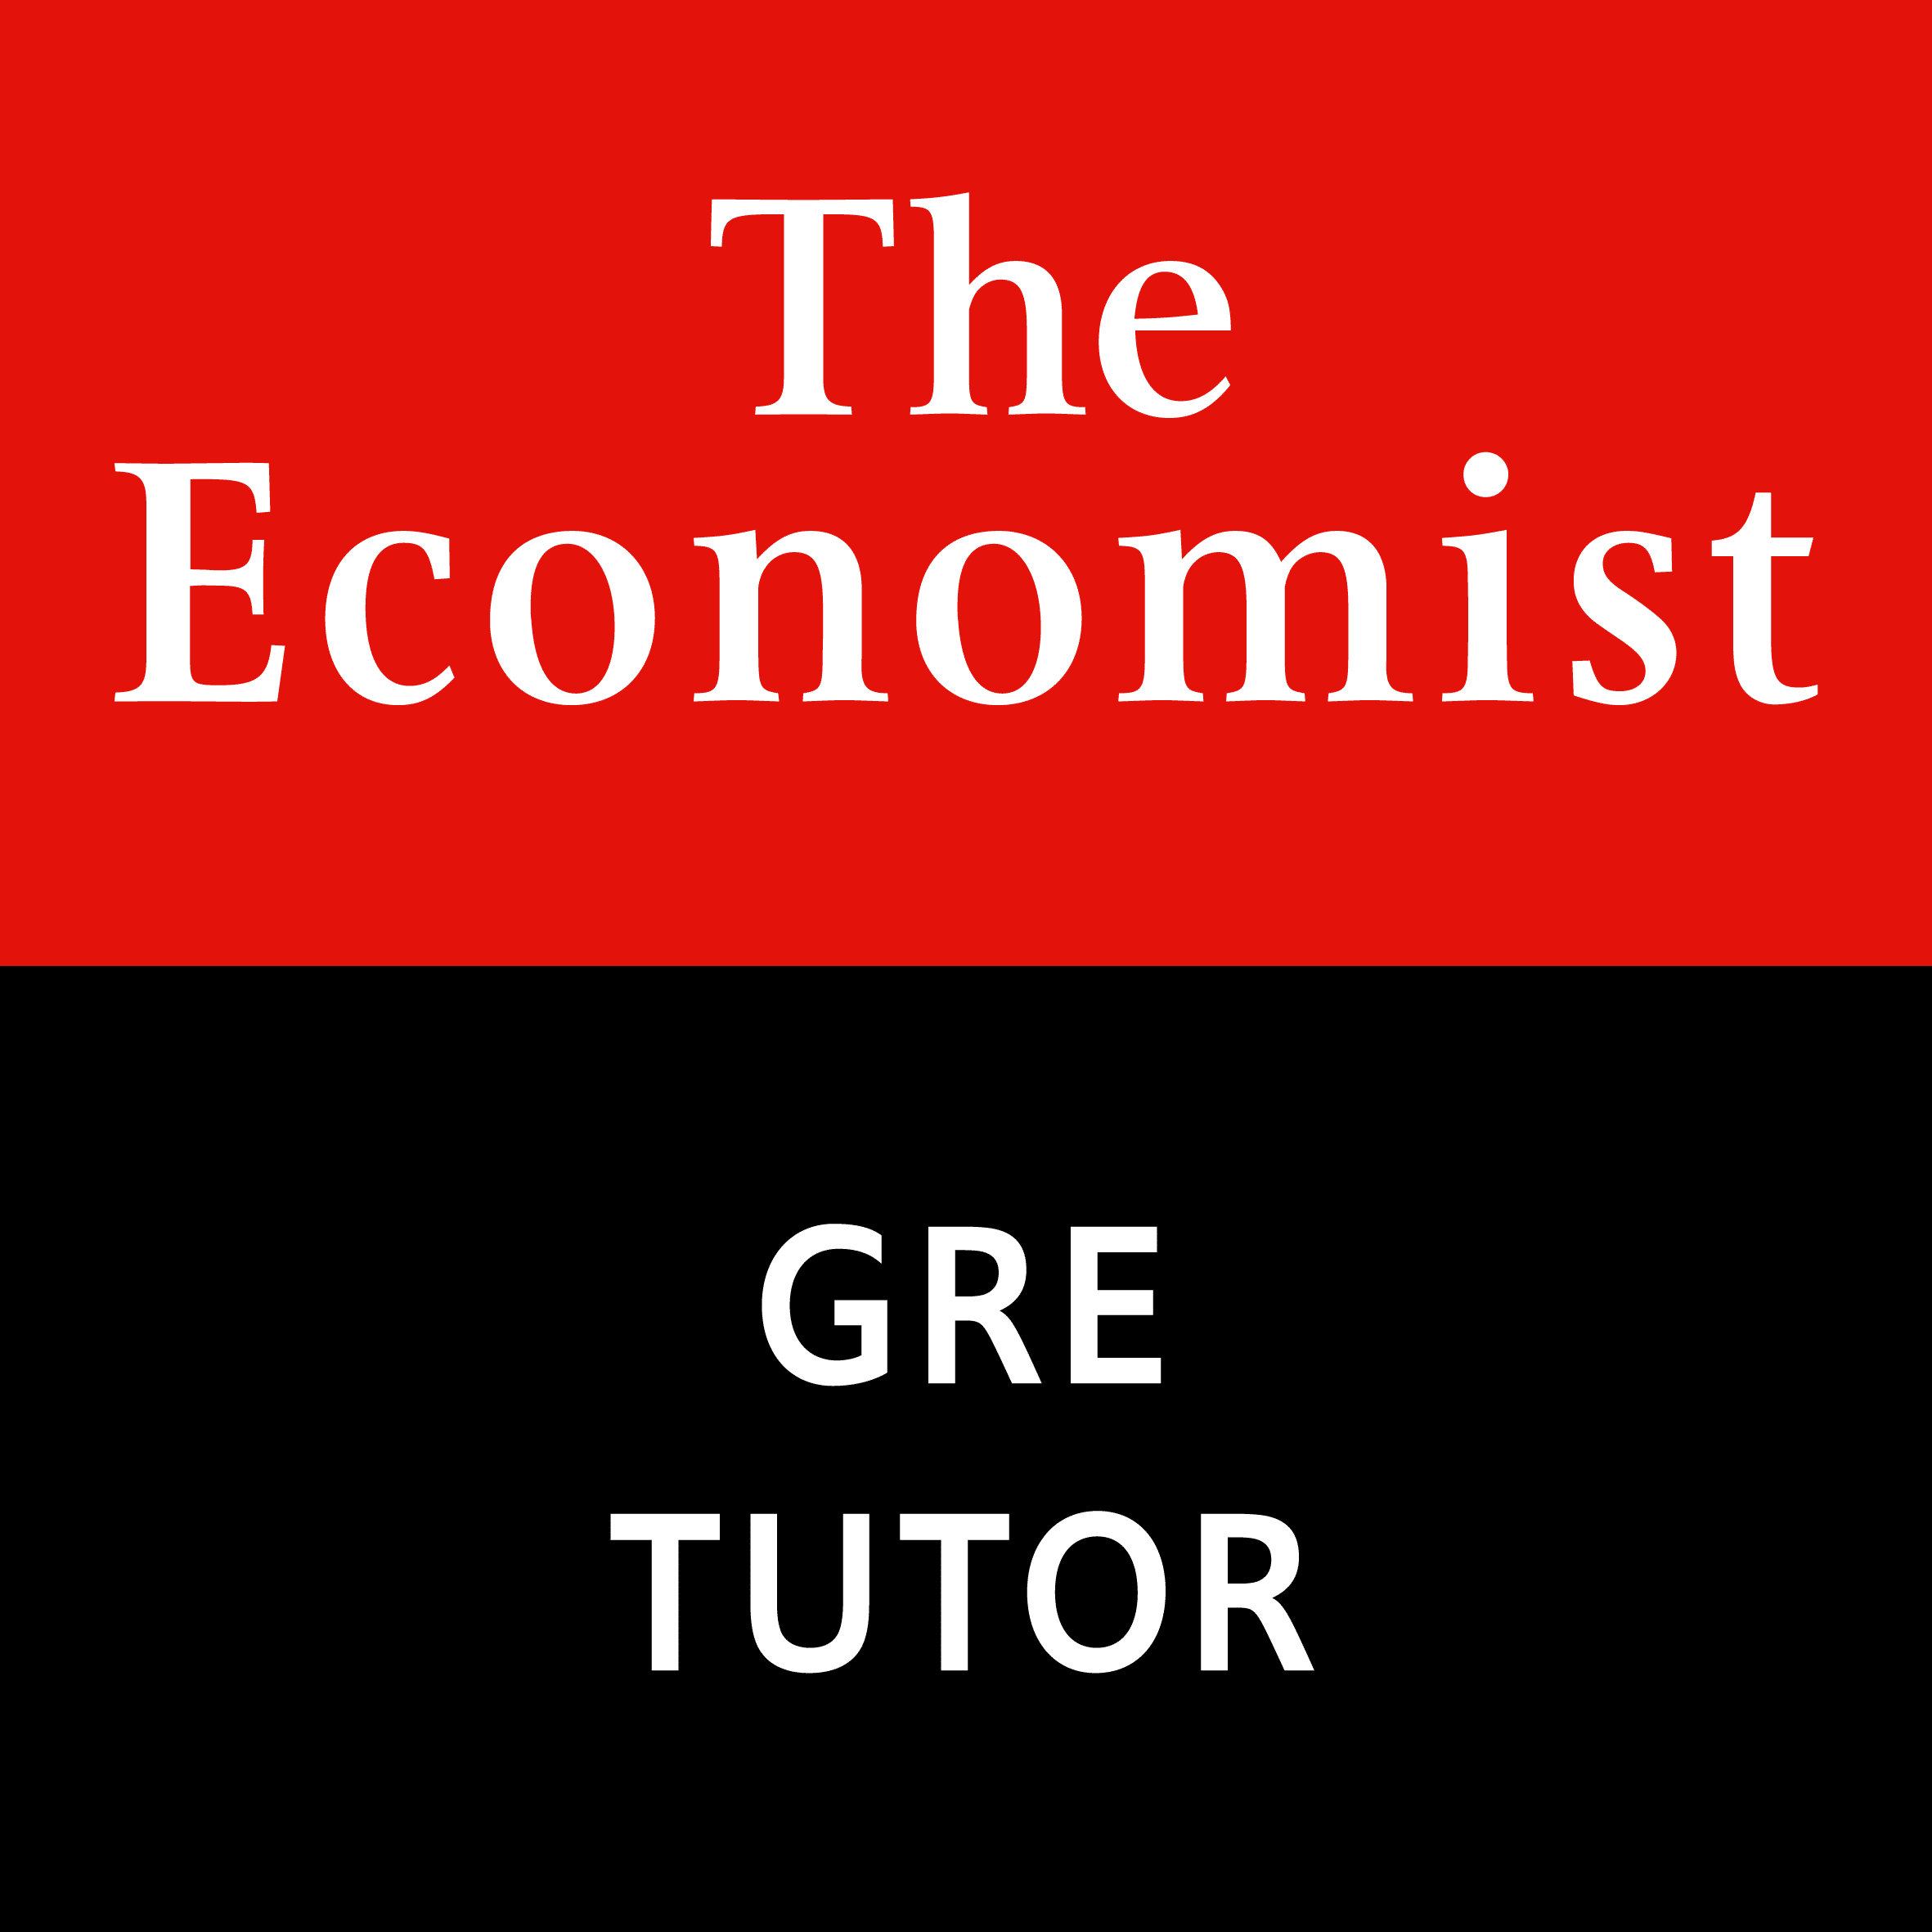 The Economist GRE Tutor